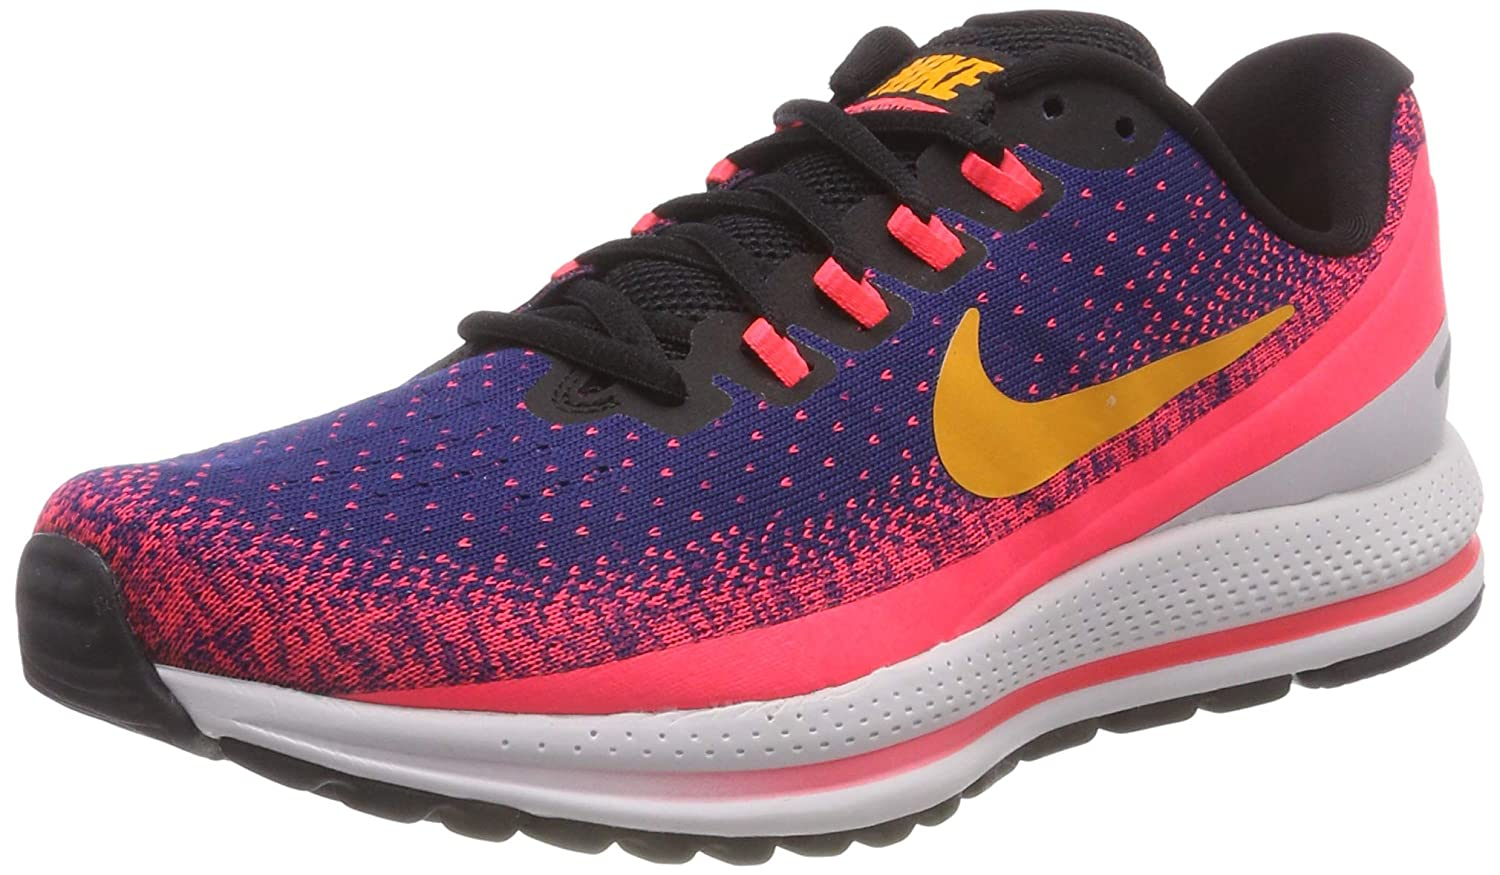 wholesale dealer ebf7f 286a8 Nike Mens Air Zoom Vomero 13 Running Shoes